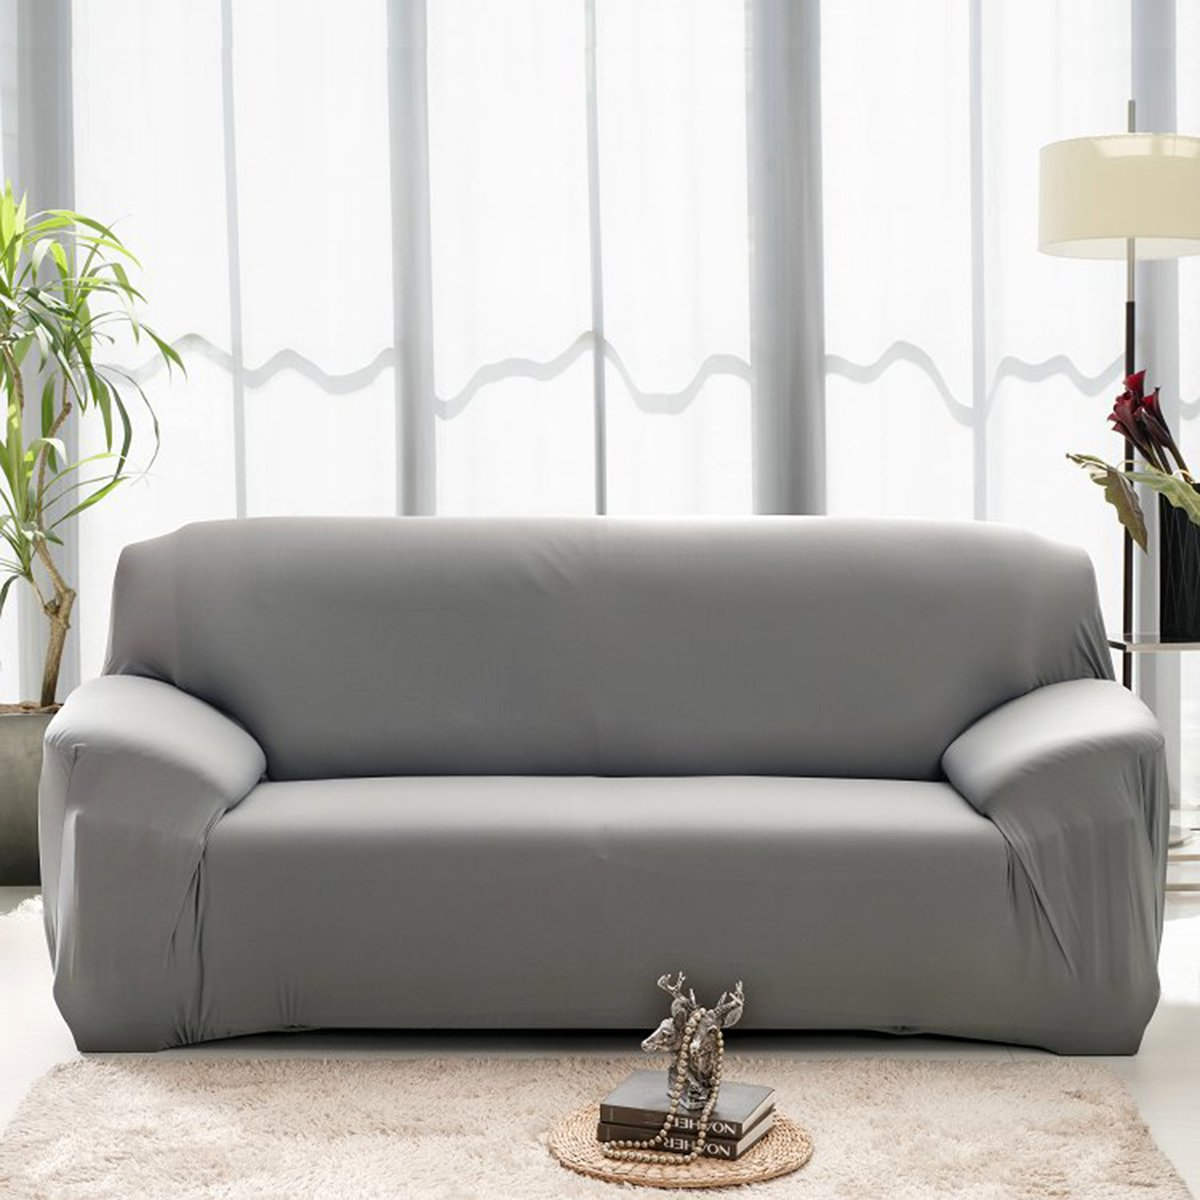 WINOMO Sofa Furniture Protector Loveseat High Elasticity Anti-mite Chair Covers Slipcover Couch 3 Seater(Grey )